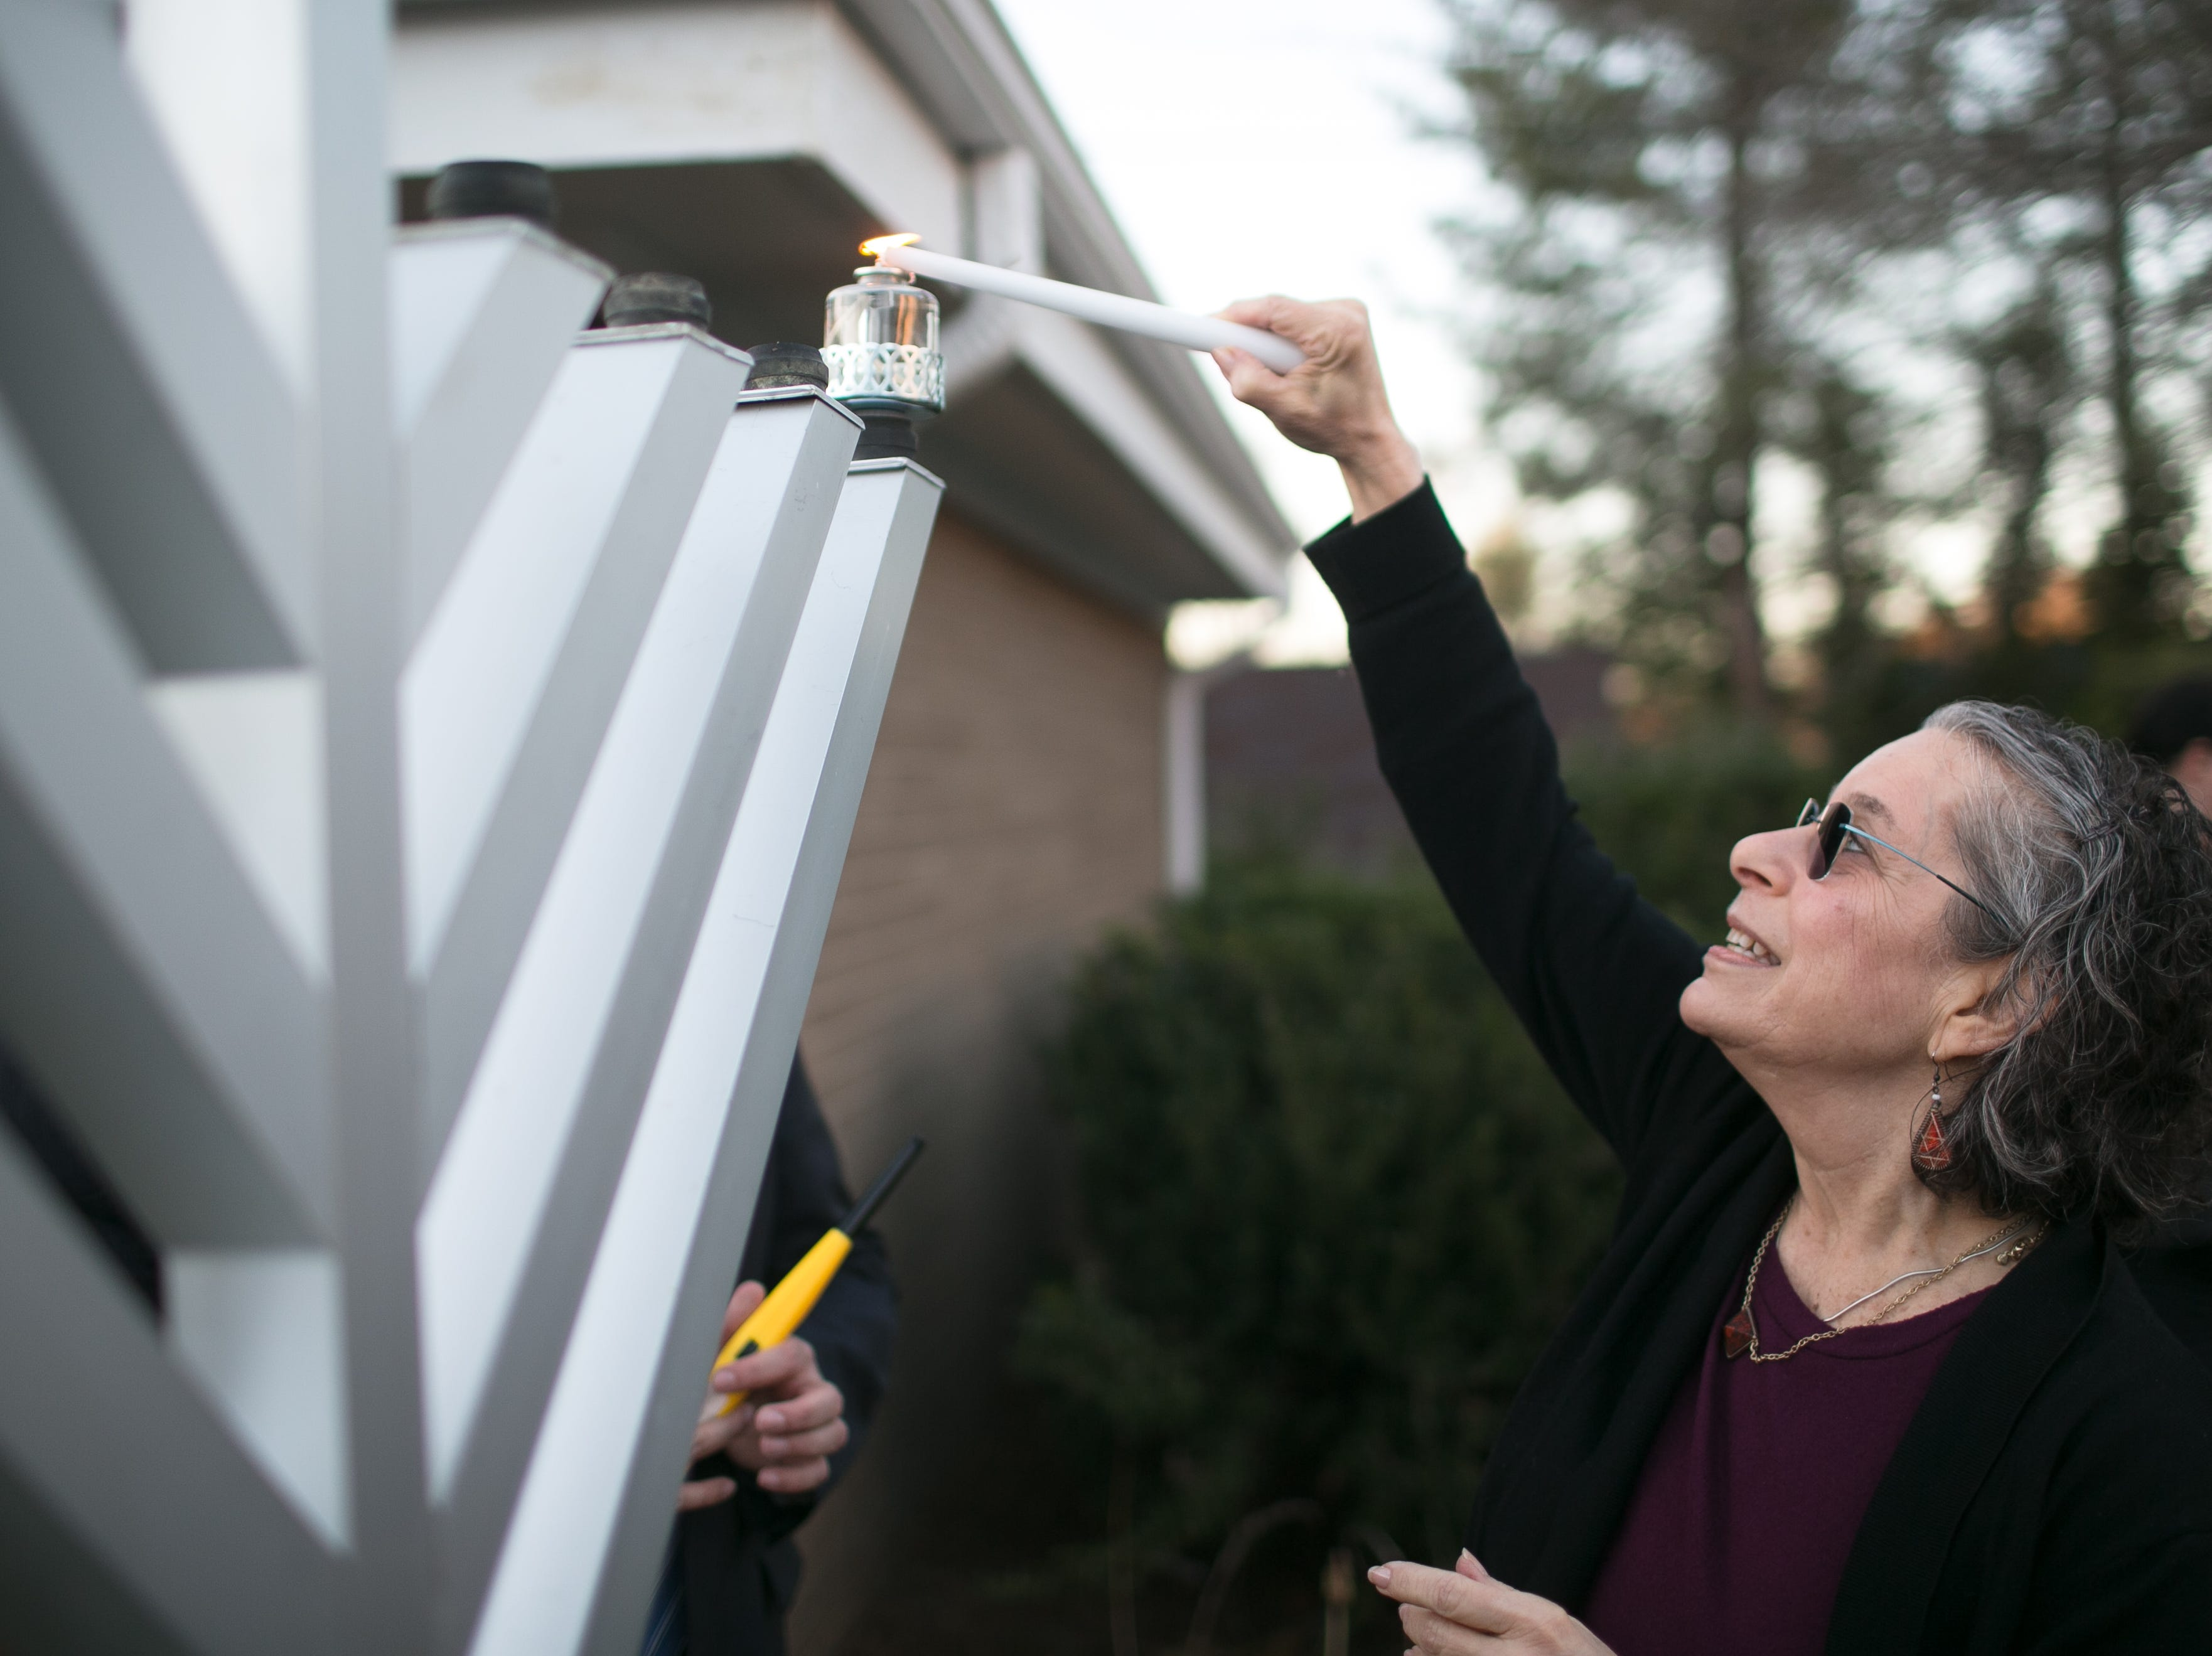 Alison Gilreath of Jewish Family Services lights the 8-foot Giving Menorah during Chanukah Live!, Asheville's community Hanukkah celebration. The event was held at the Chabad House on Dec. 2, 2018, in conjunction with the grand opening of their new facility on McDowell Street.